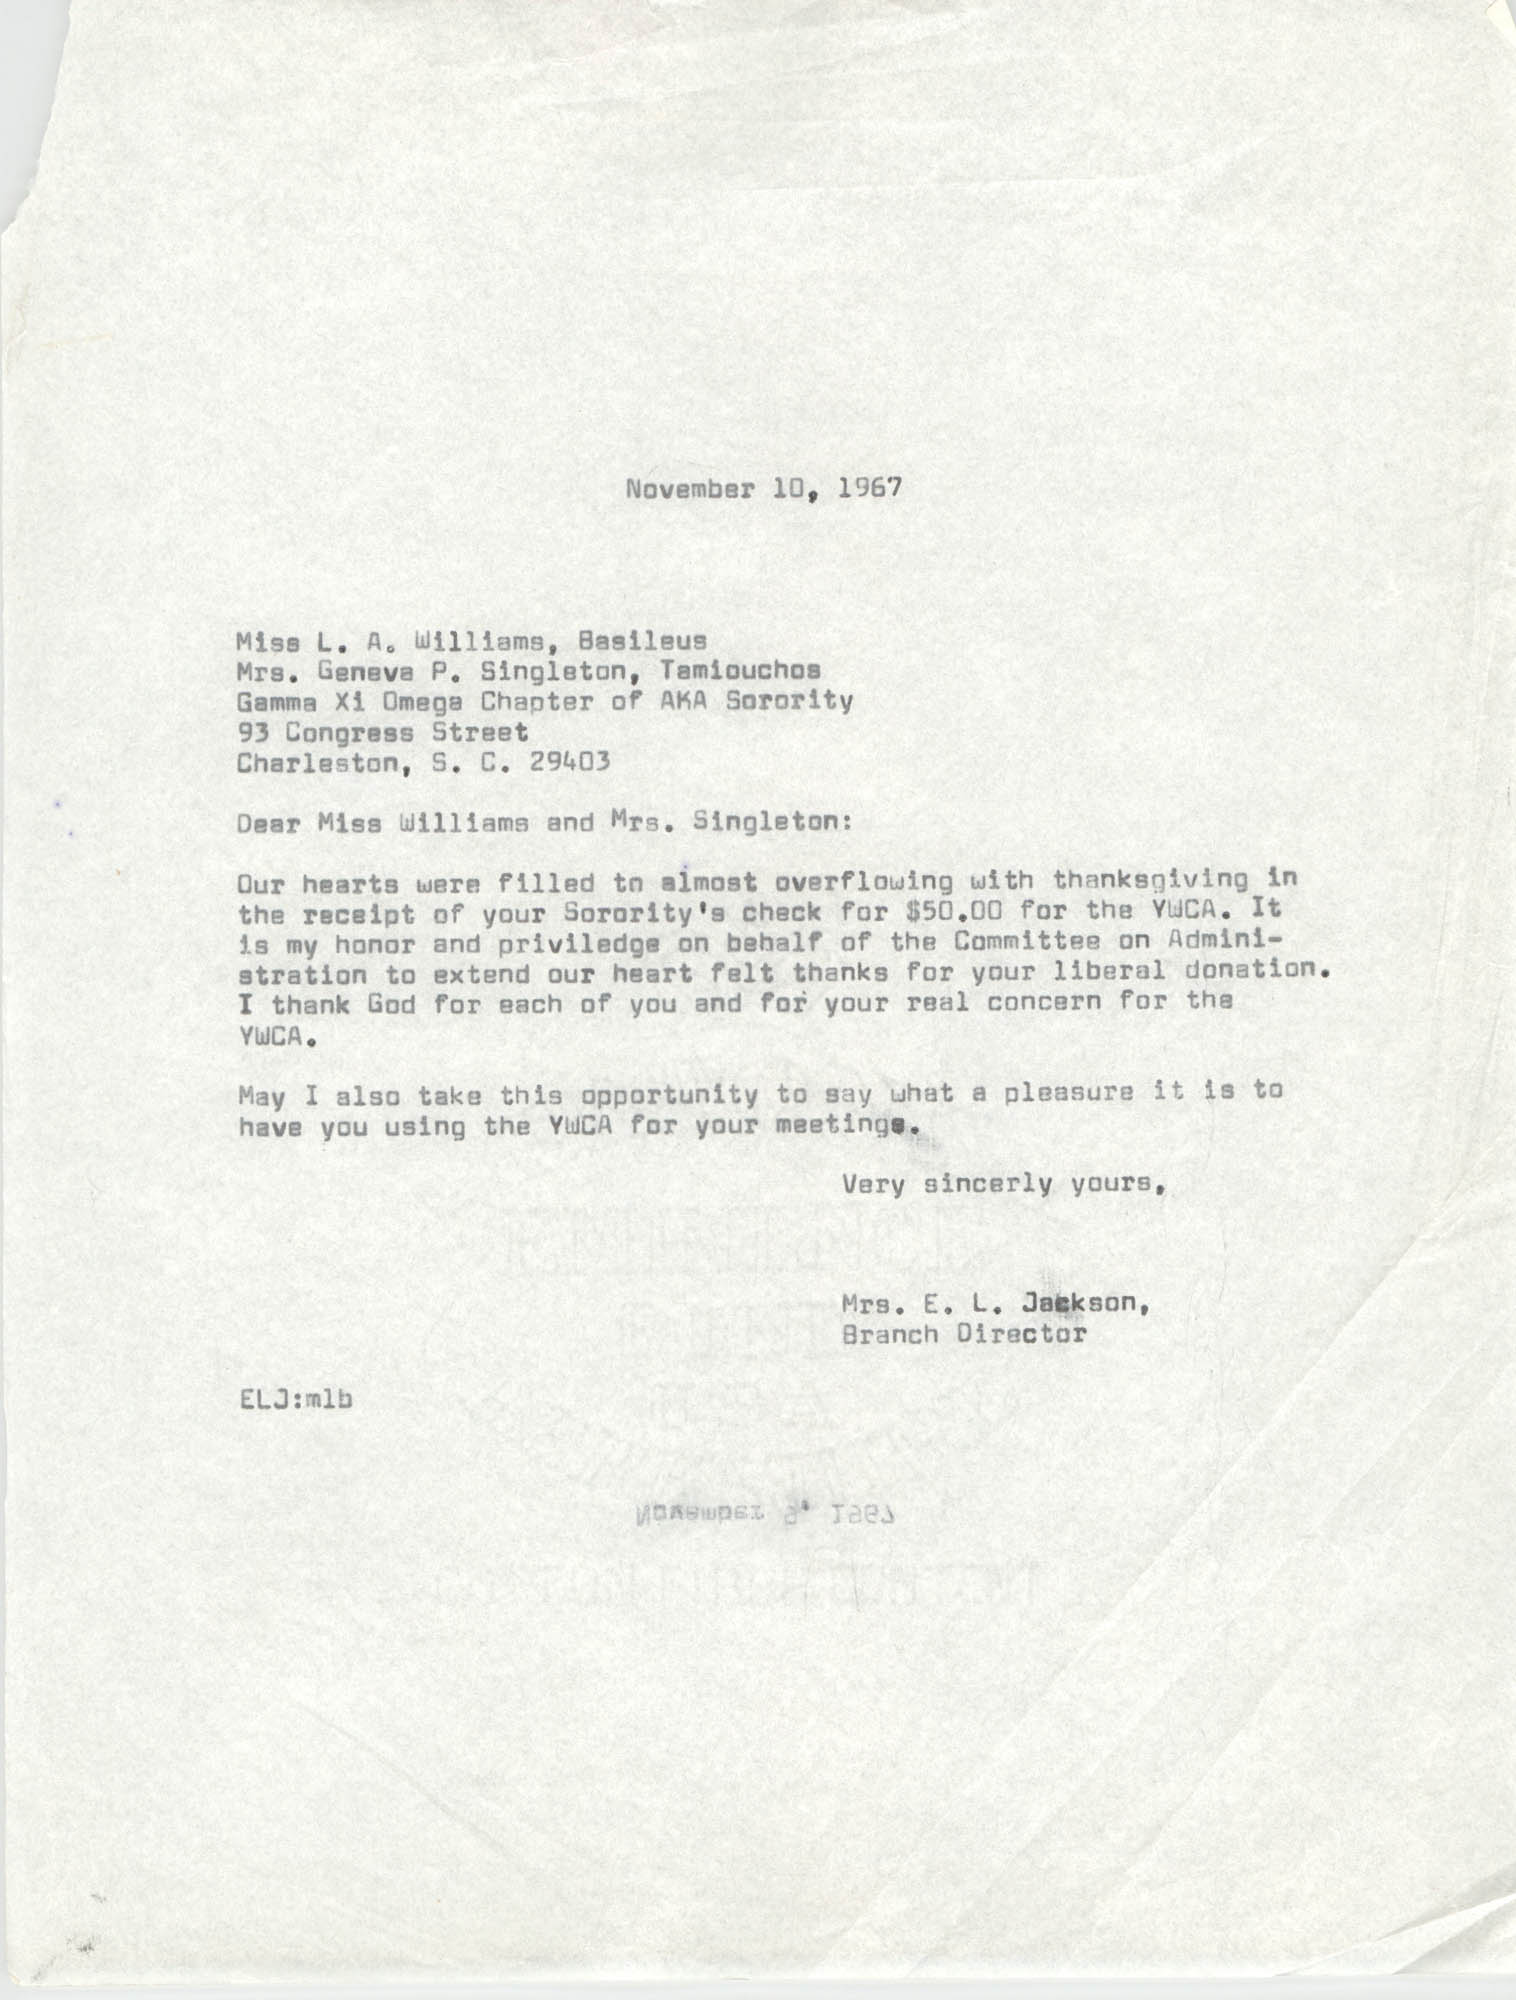 Letter from Christine O. Jackson and L. A. Williams, November 10, 1967